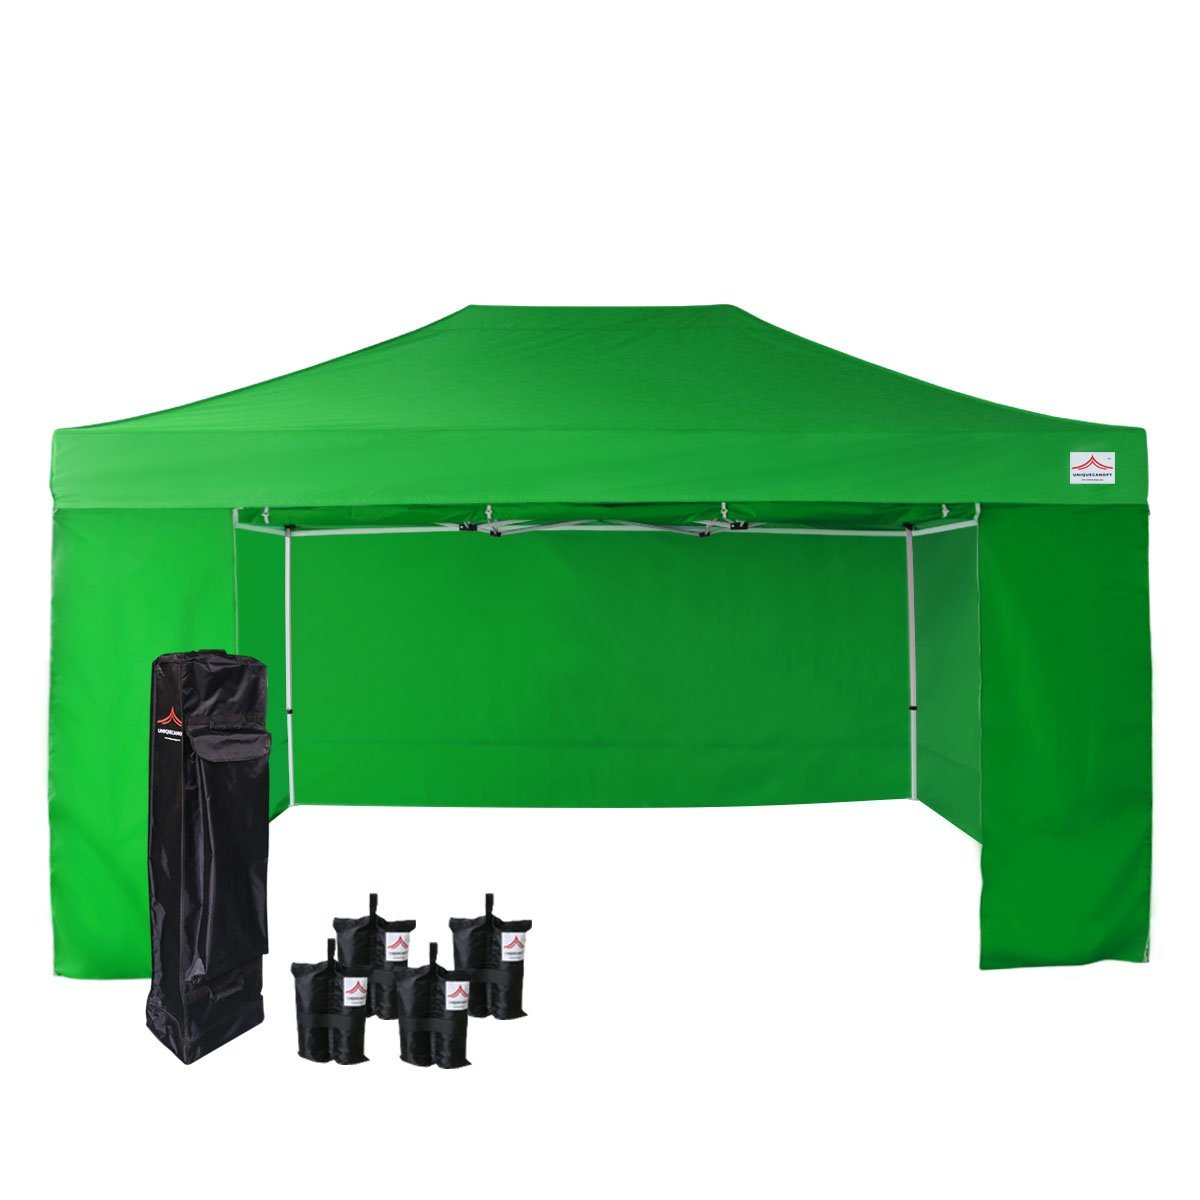 UNIQUECANOPY 500D Enhanced 10x15 Ez Pop up Canopy Portable Folded Commercial Canopy Car Shelter Wedding Party Show Tent with 4 Zippered Side Walls and Wheeled Carrying Bag Green